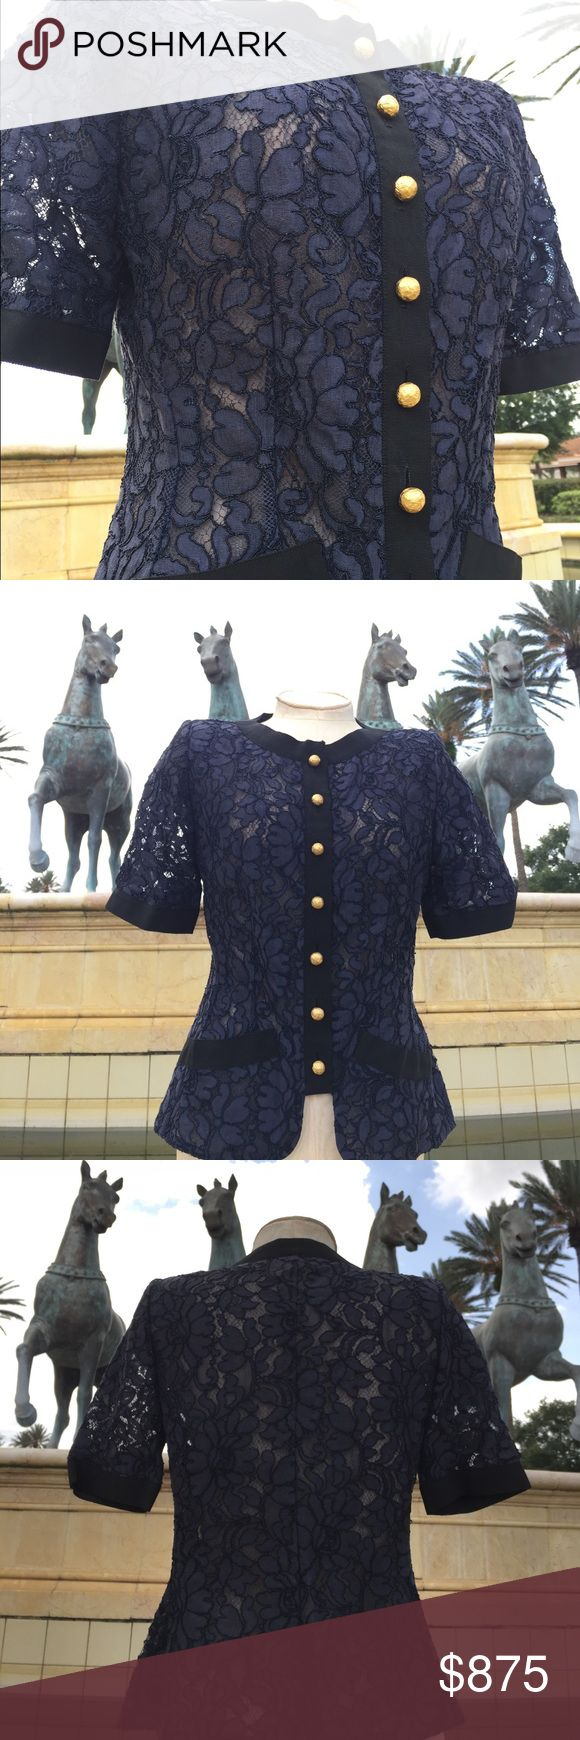 Vintage Yves Saint Laurent rive gauche blouse Absolutely one of a kind! Size 38 bought in Paris. Yves Saint Laurent Tops